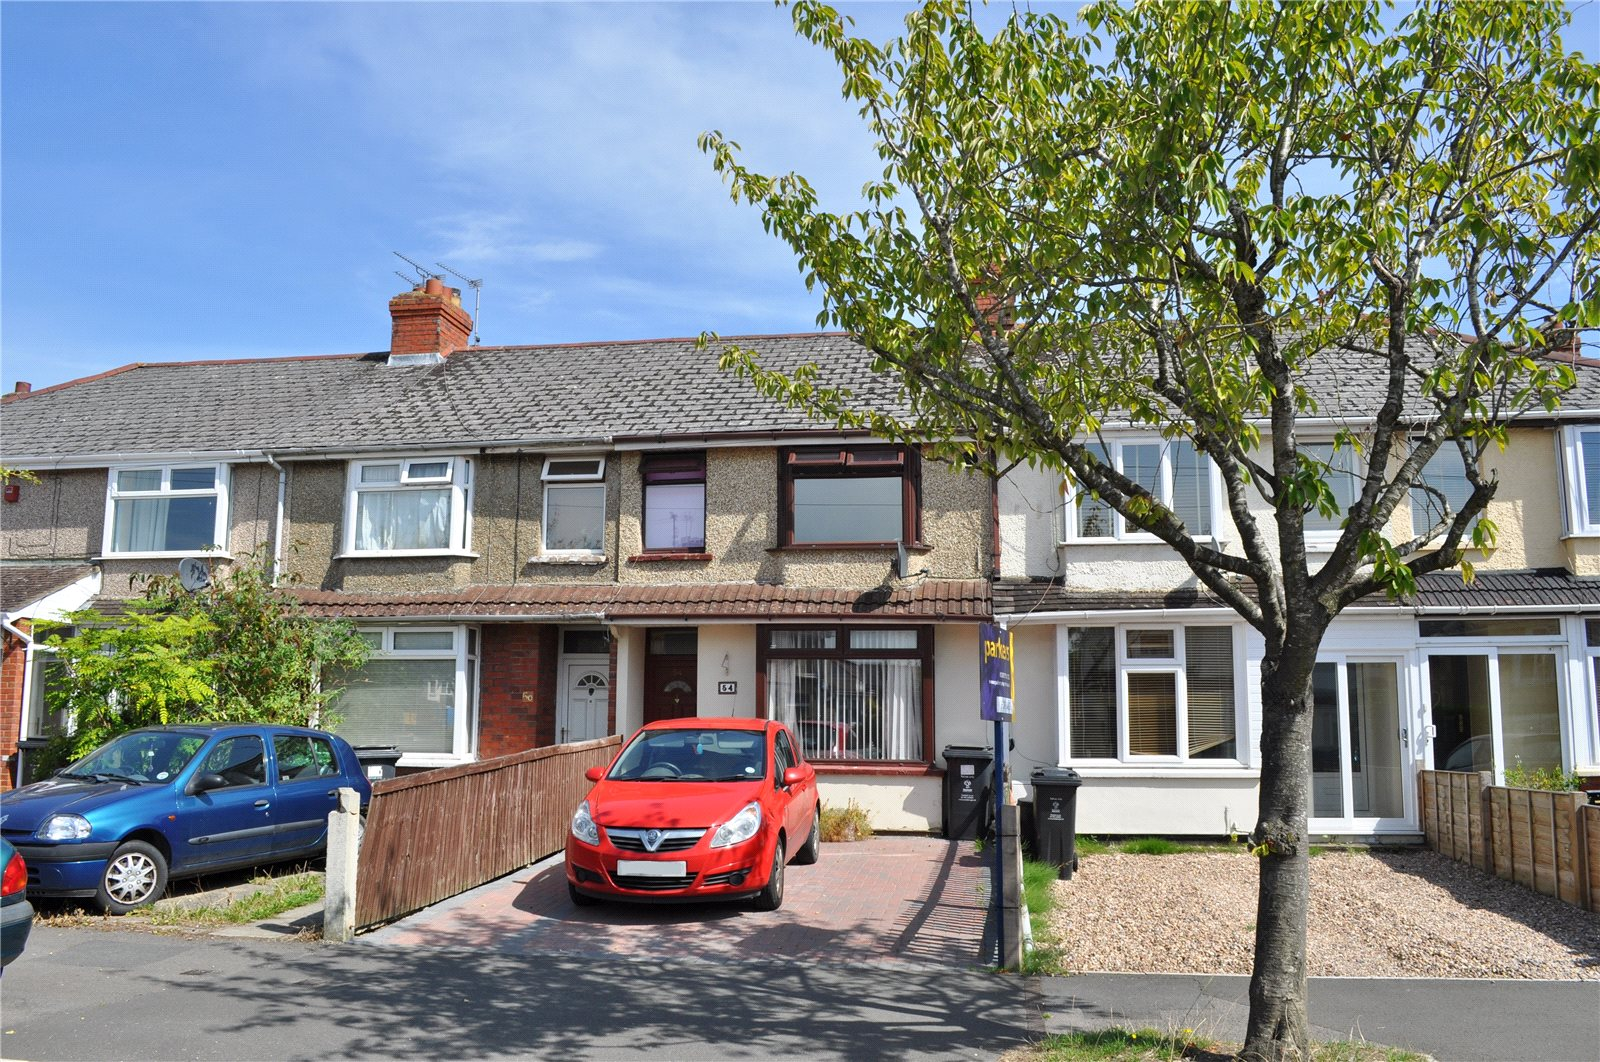 Parkers Swindon 2 Bedroom House For Sale In Surrey Road Swindon Wiltshire Sn2 Parkers